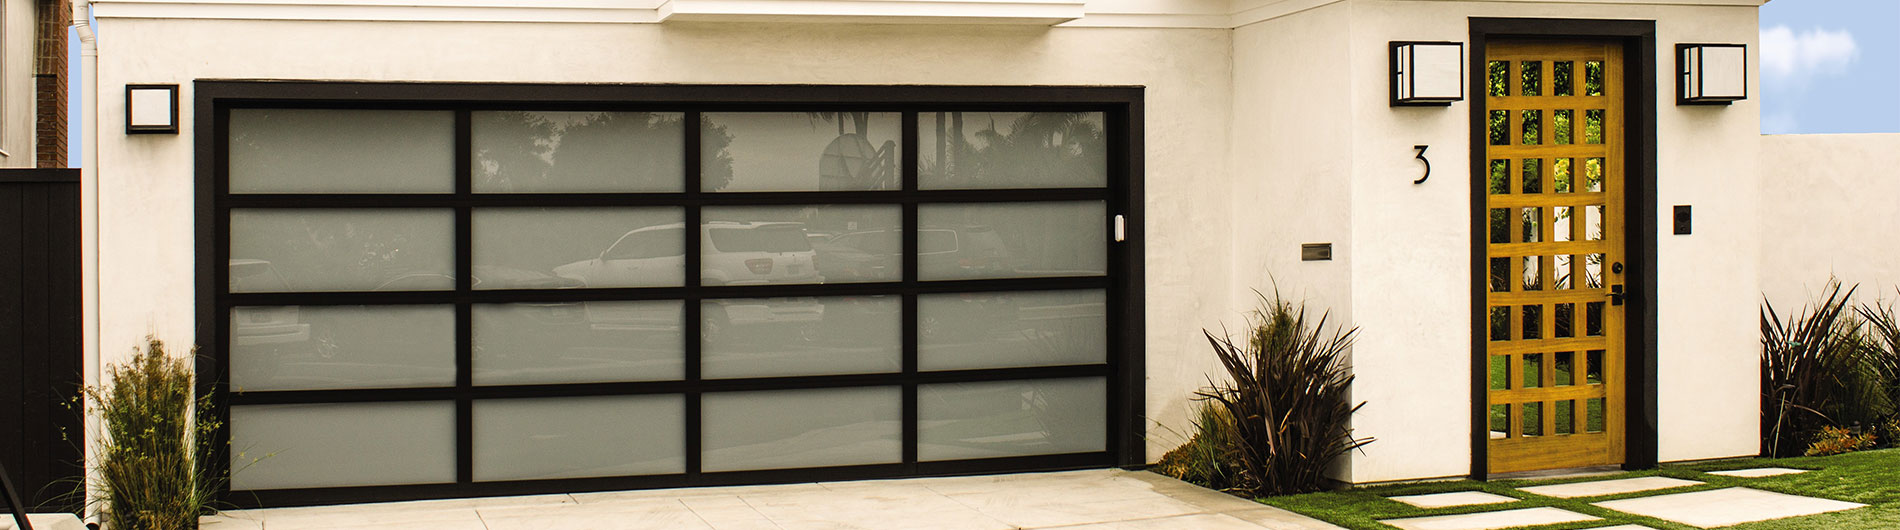 8800-Aluminum-Door-Anodized-Black-WhiteLaminatedGlass-2.jpg